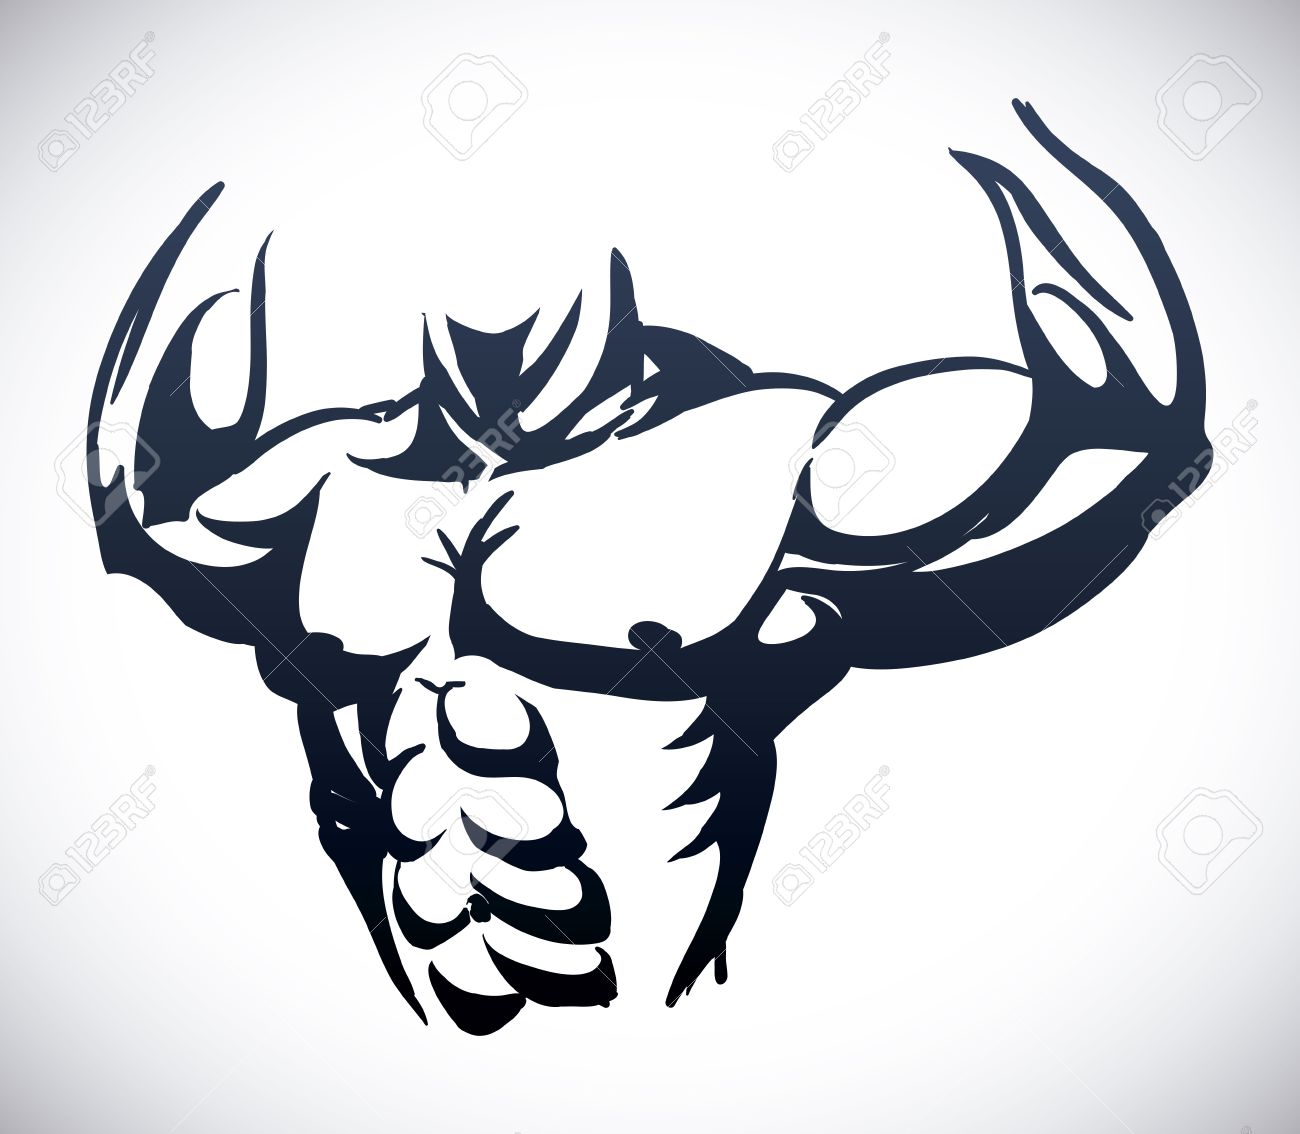 Bodybuilding Graphic Design , Vector Illustration Royalty Free ... for Bodybuilding Graphic Design  83fiz